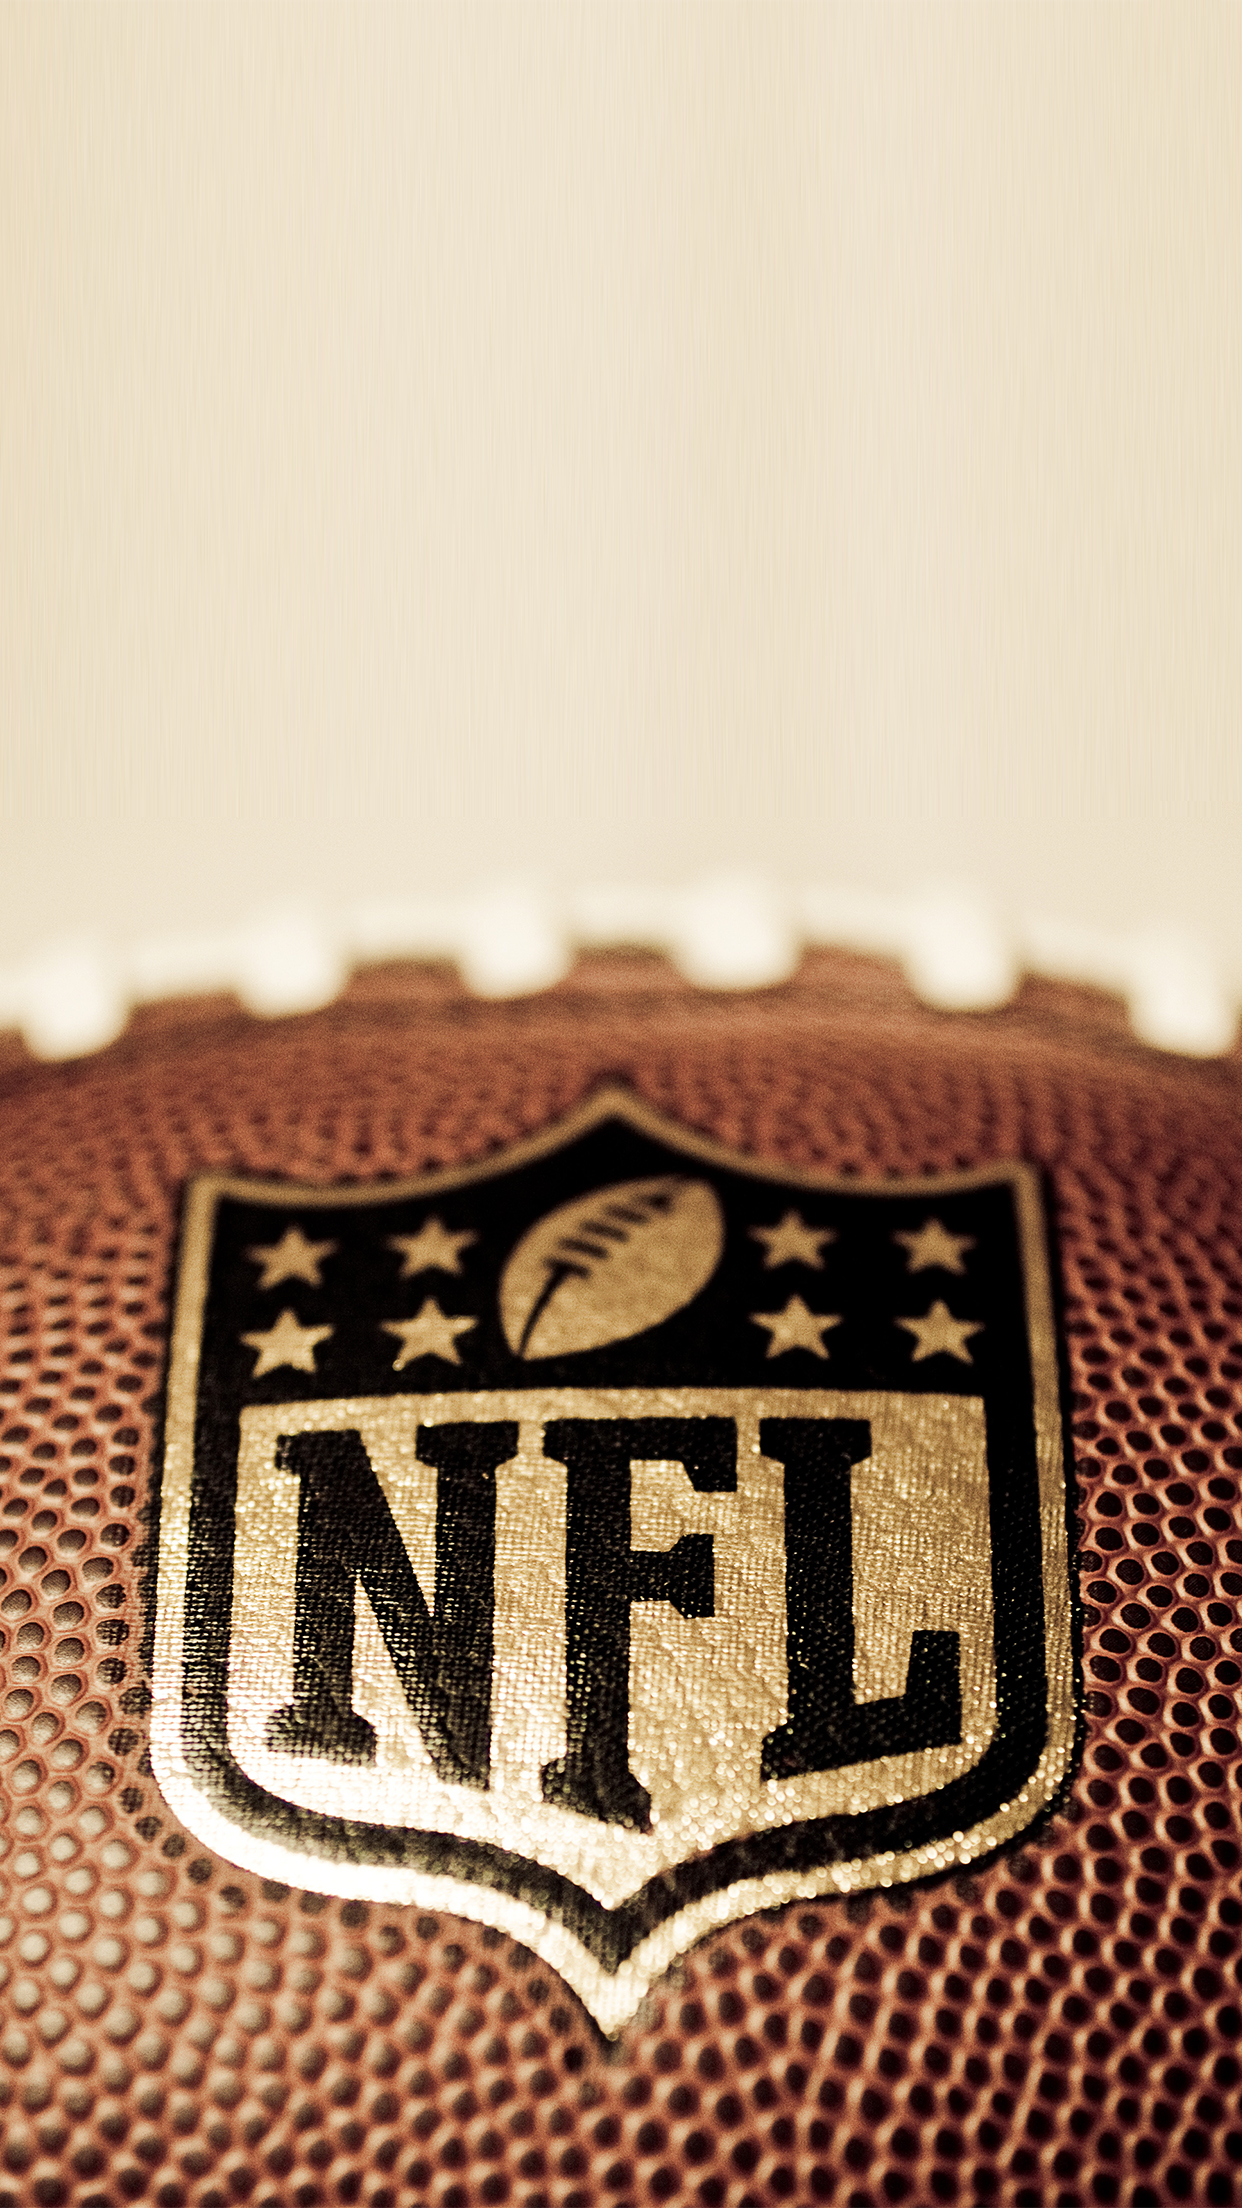 American Football NFL 3Wallpapers iPhone Parallax American Football NFL